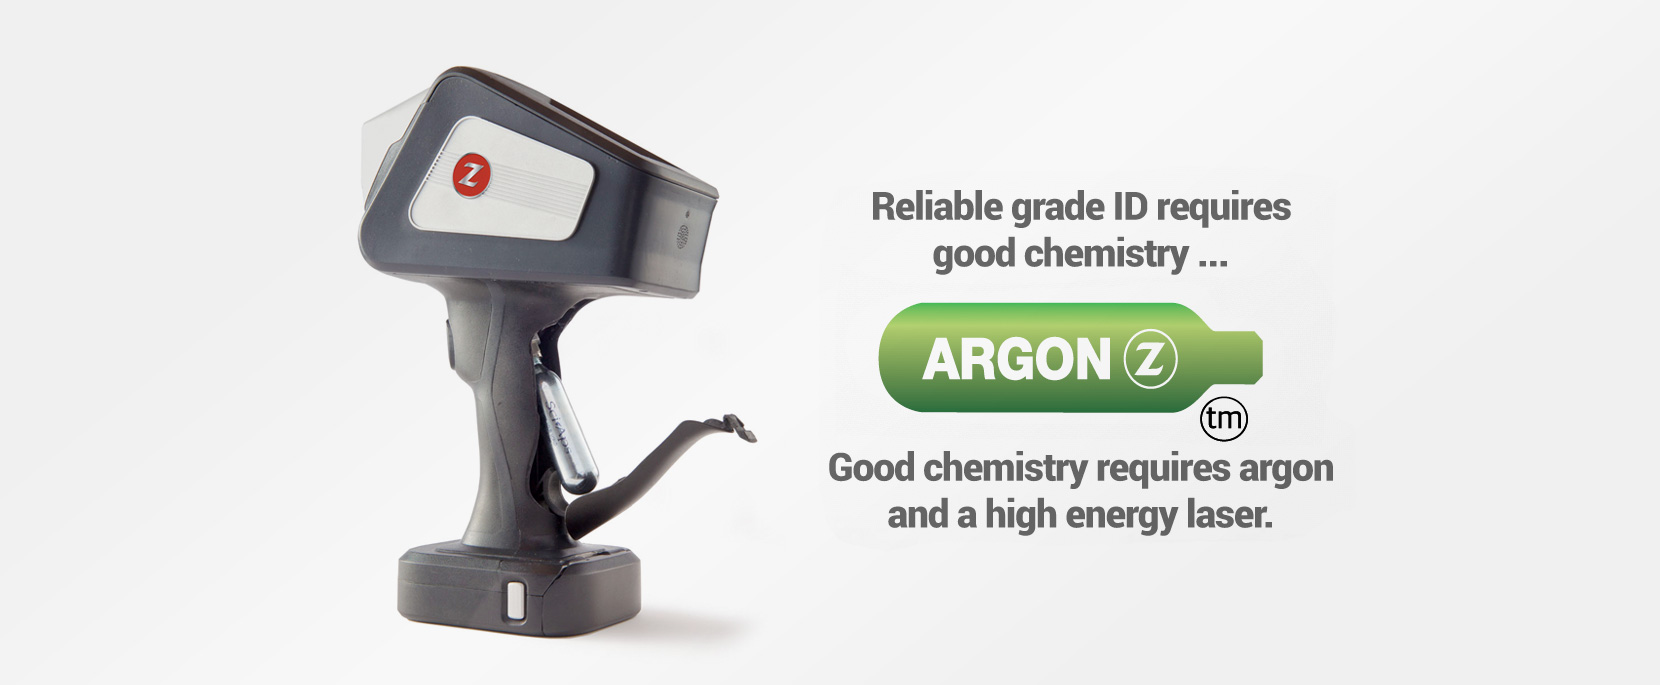 Good Chemistry requires argon and a high energy laser